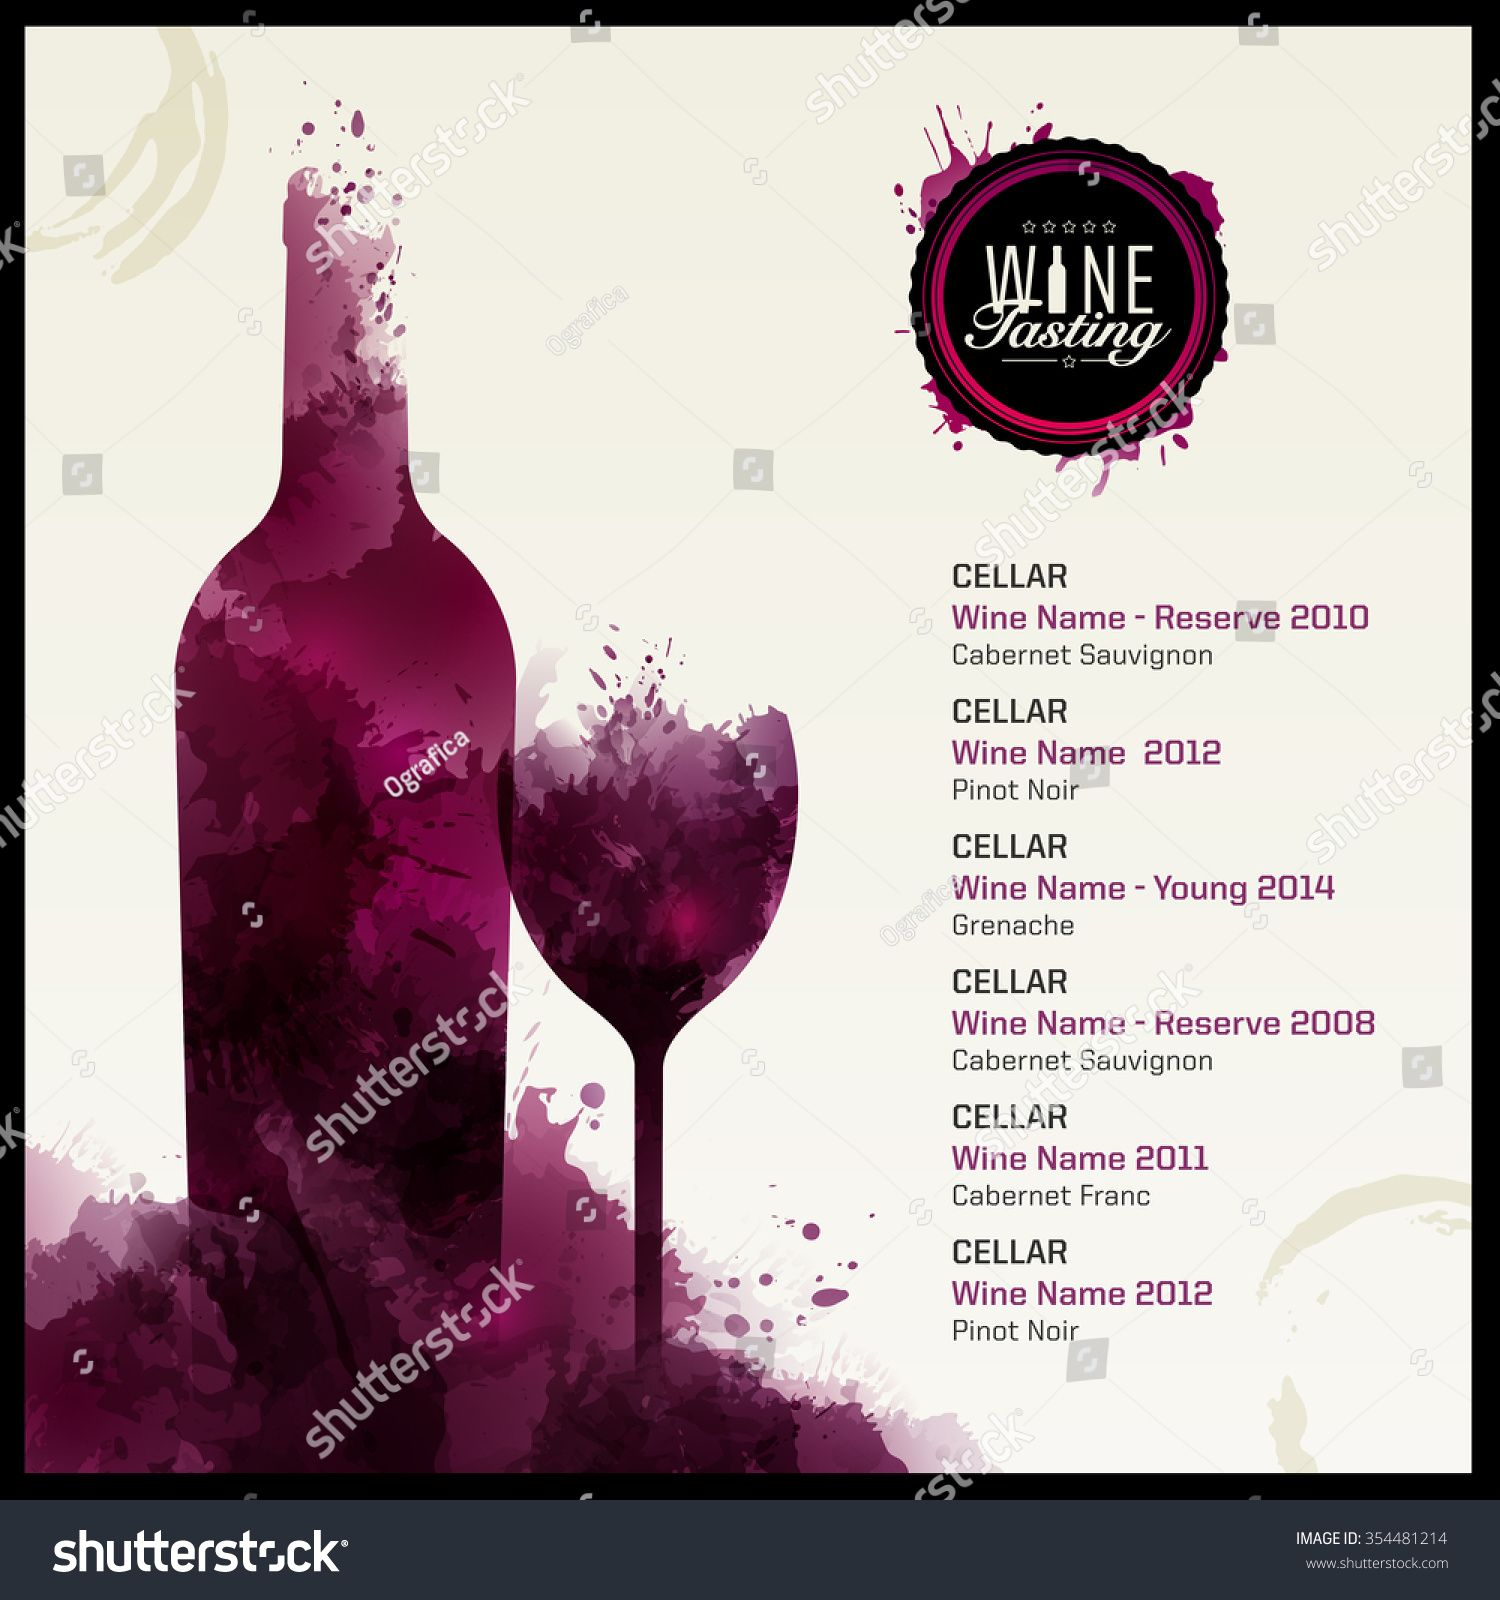 invite and ecard design. wine and cheese invitations chalkbo lovely ...